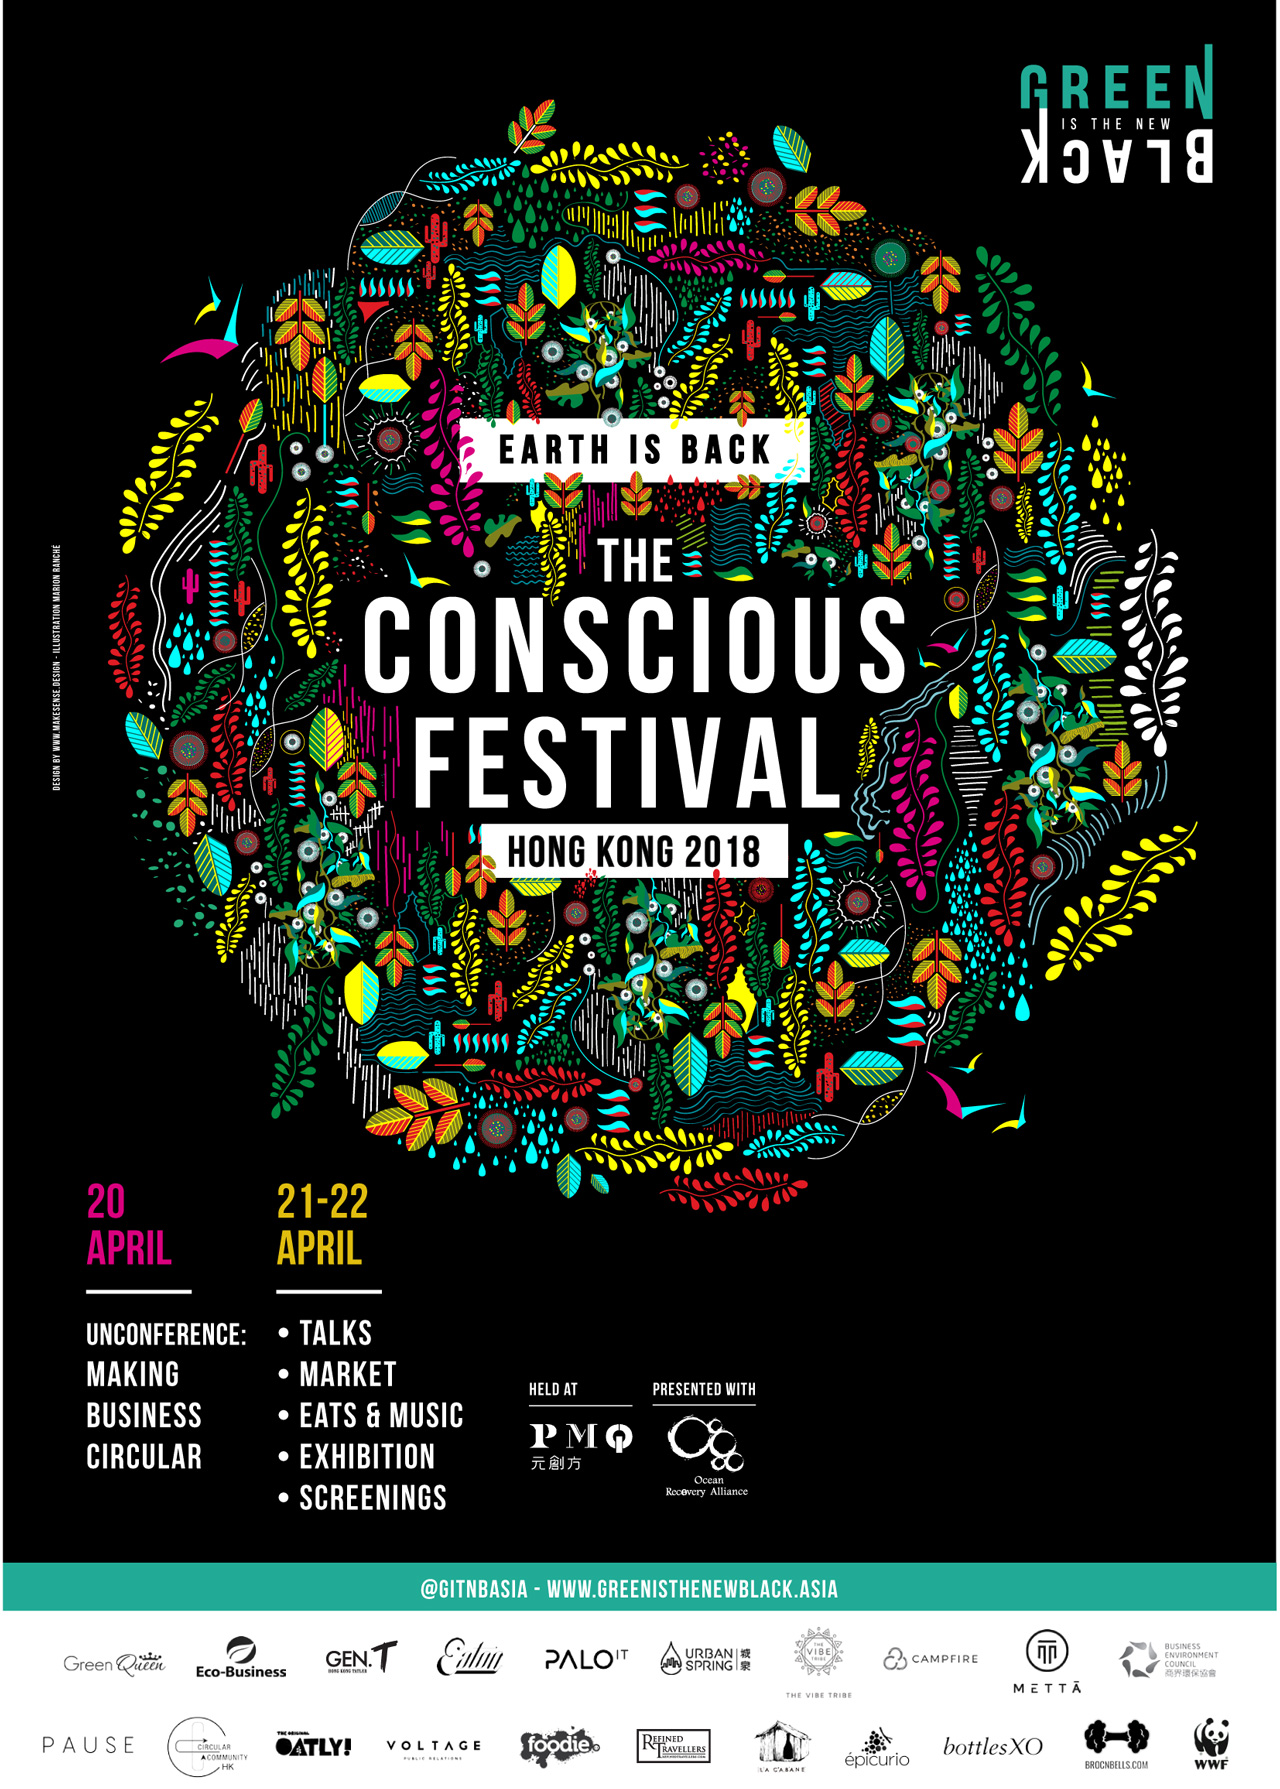 The Conscious Festival -- 20-22 April in HK